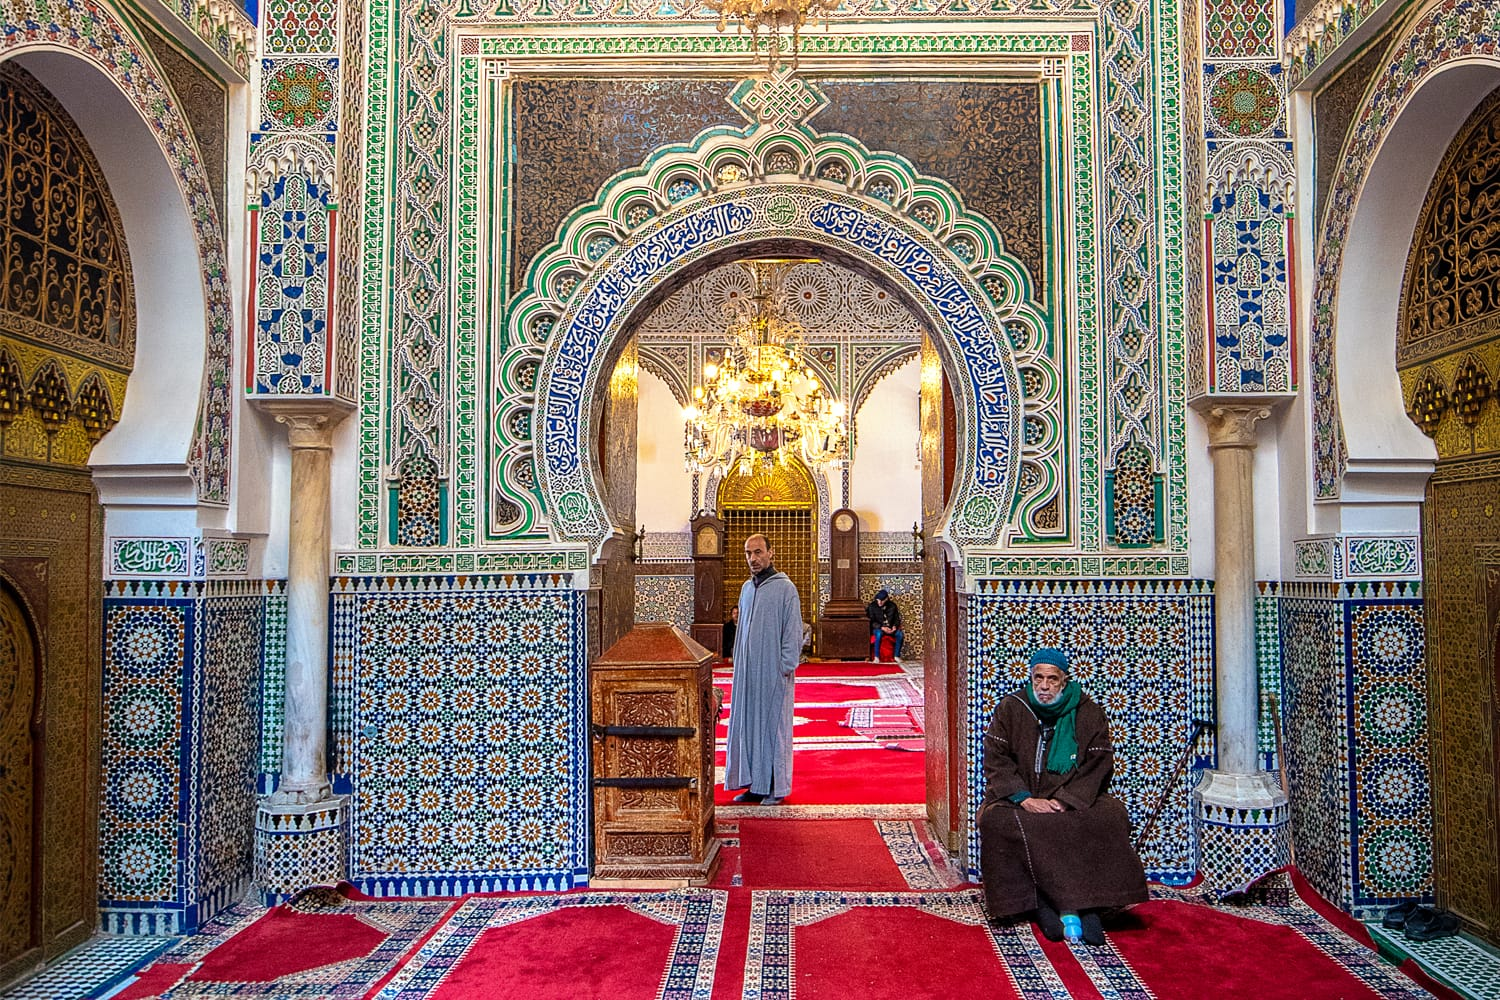 Inside courtyard and interior of The Zaouia Moulay Idriss II is shrine or mosque and is dedicated to and tomb of Moulay Idriss II in Fez, Morocco